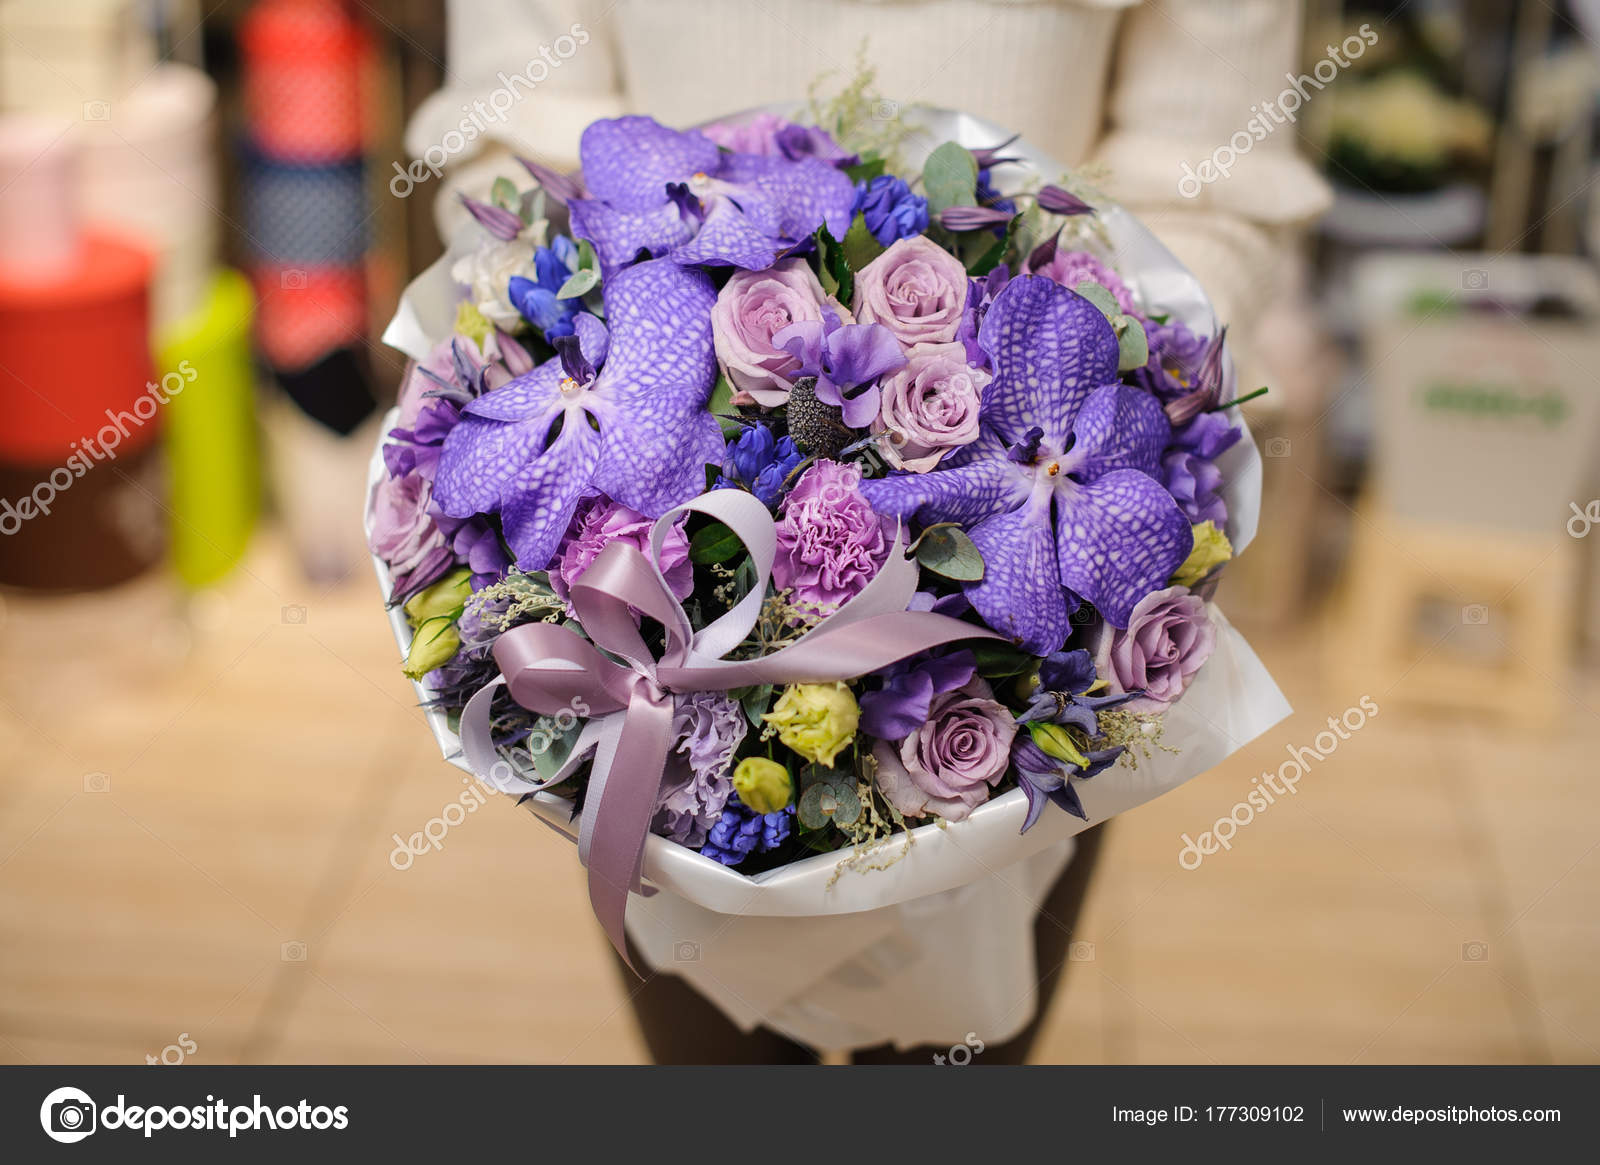 Woman In A White Sweater Holding A Large Flower Bouquet In Purple